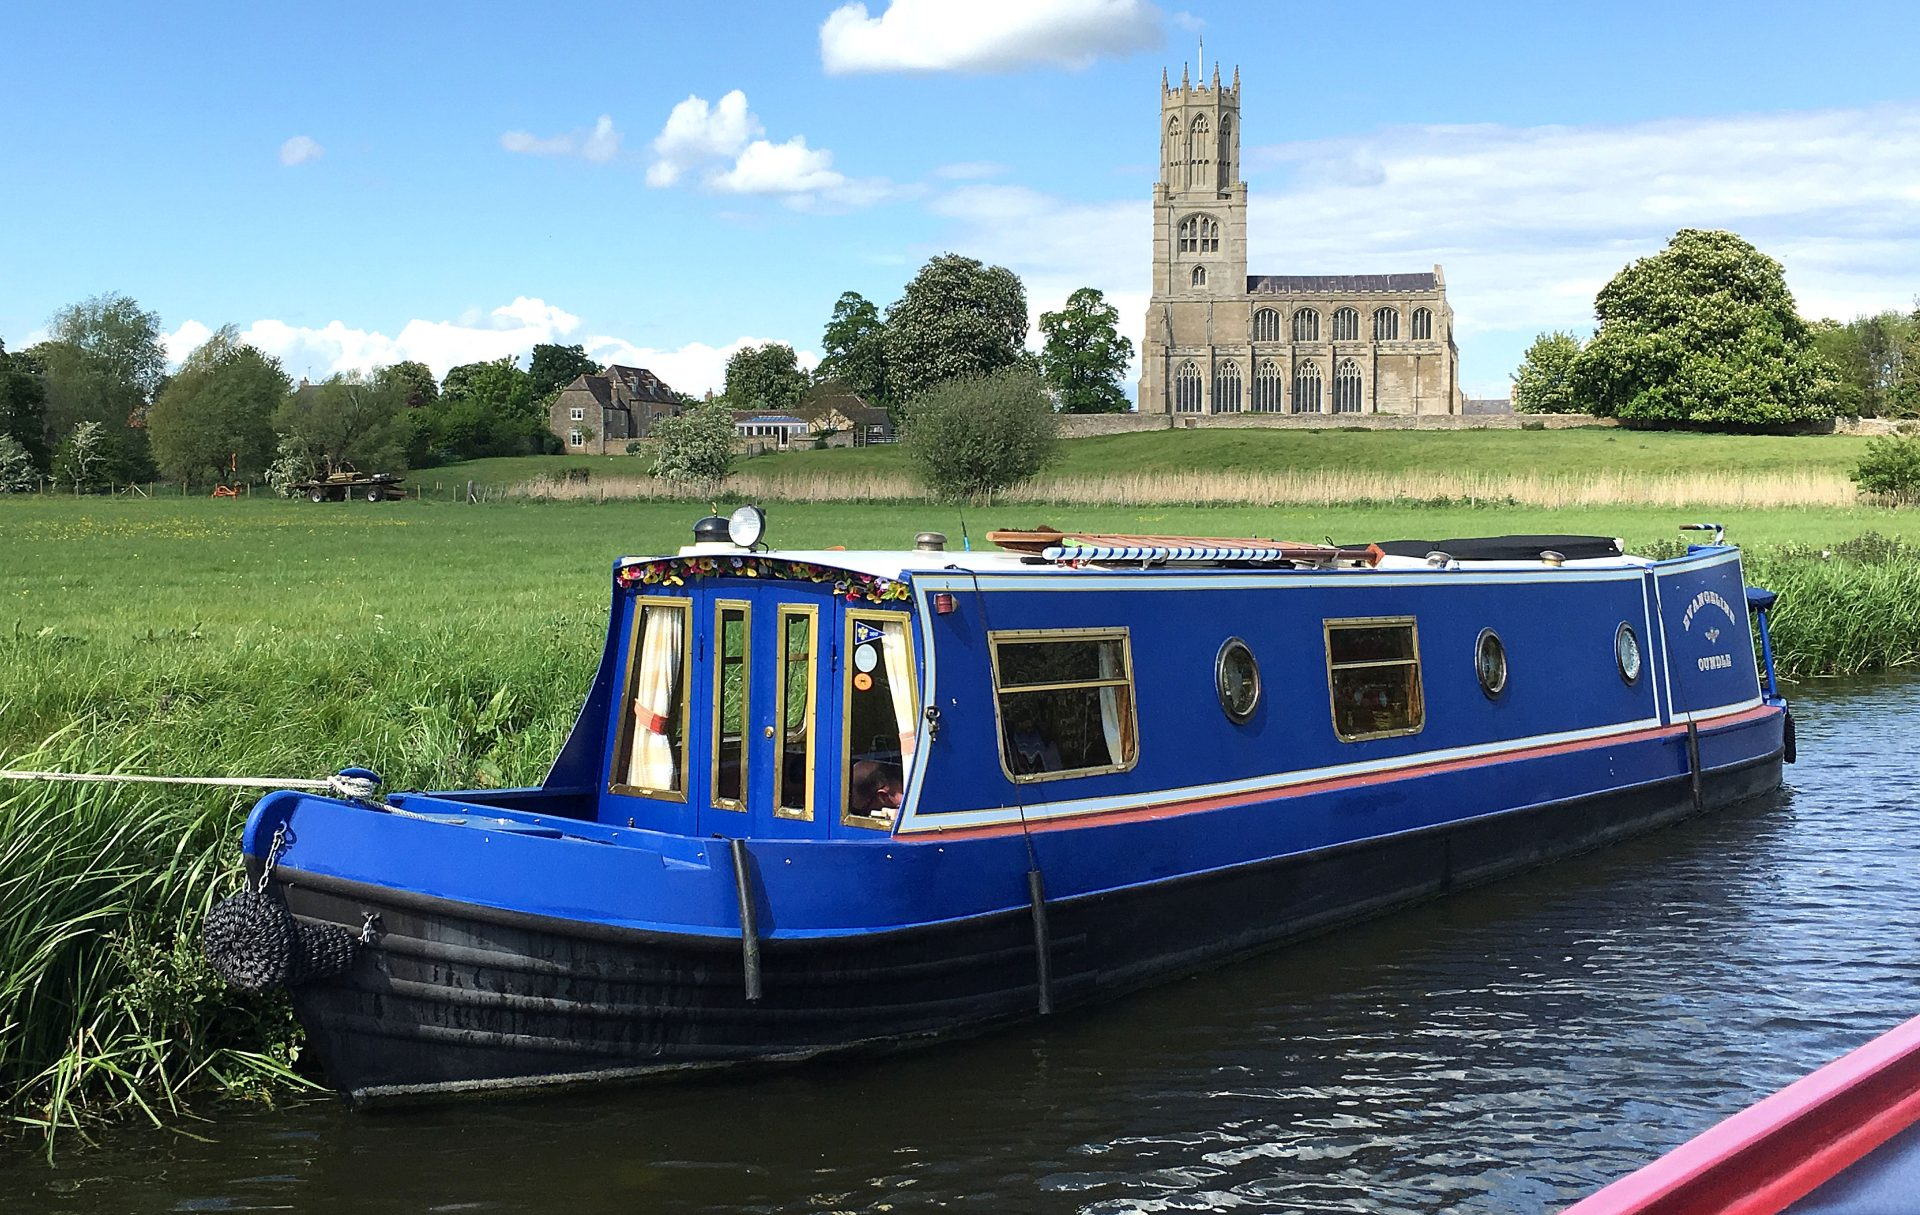 Fotheringhay, River Nene. You can visit the church here. It has a wonderful light interior.